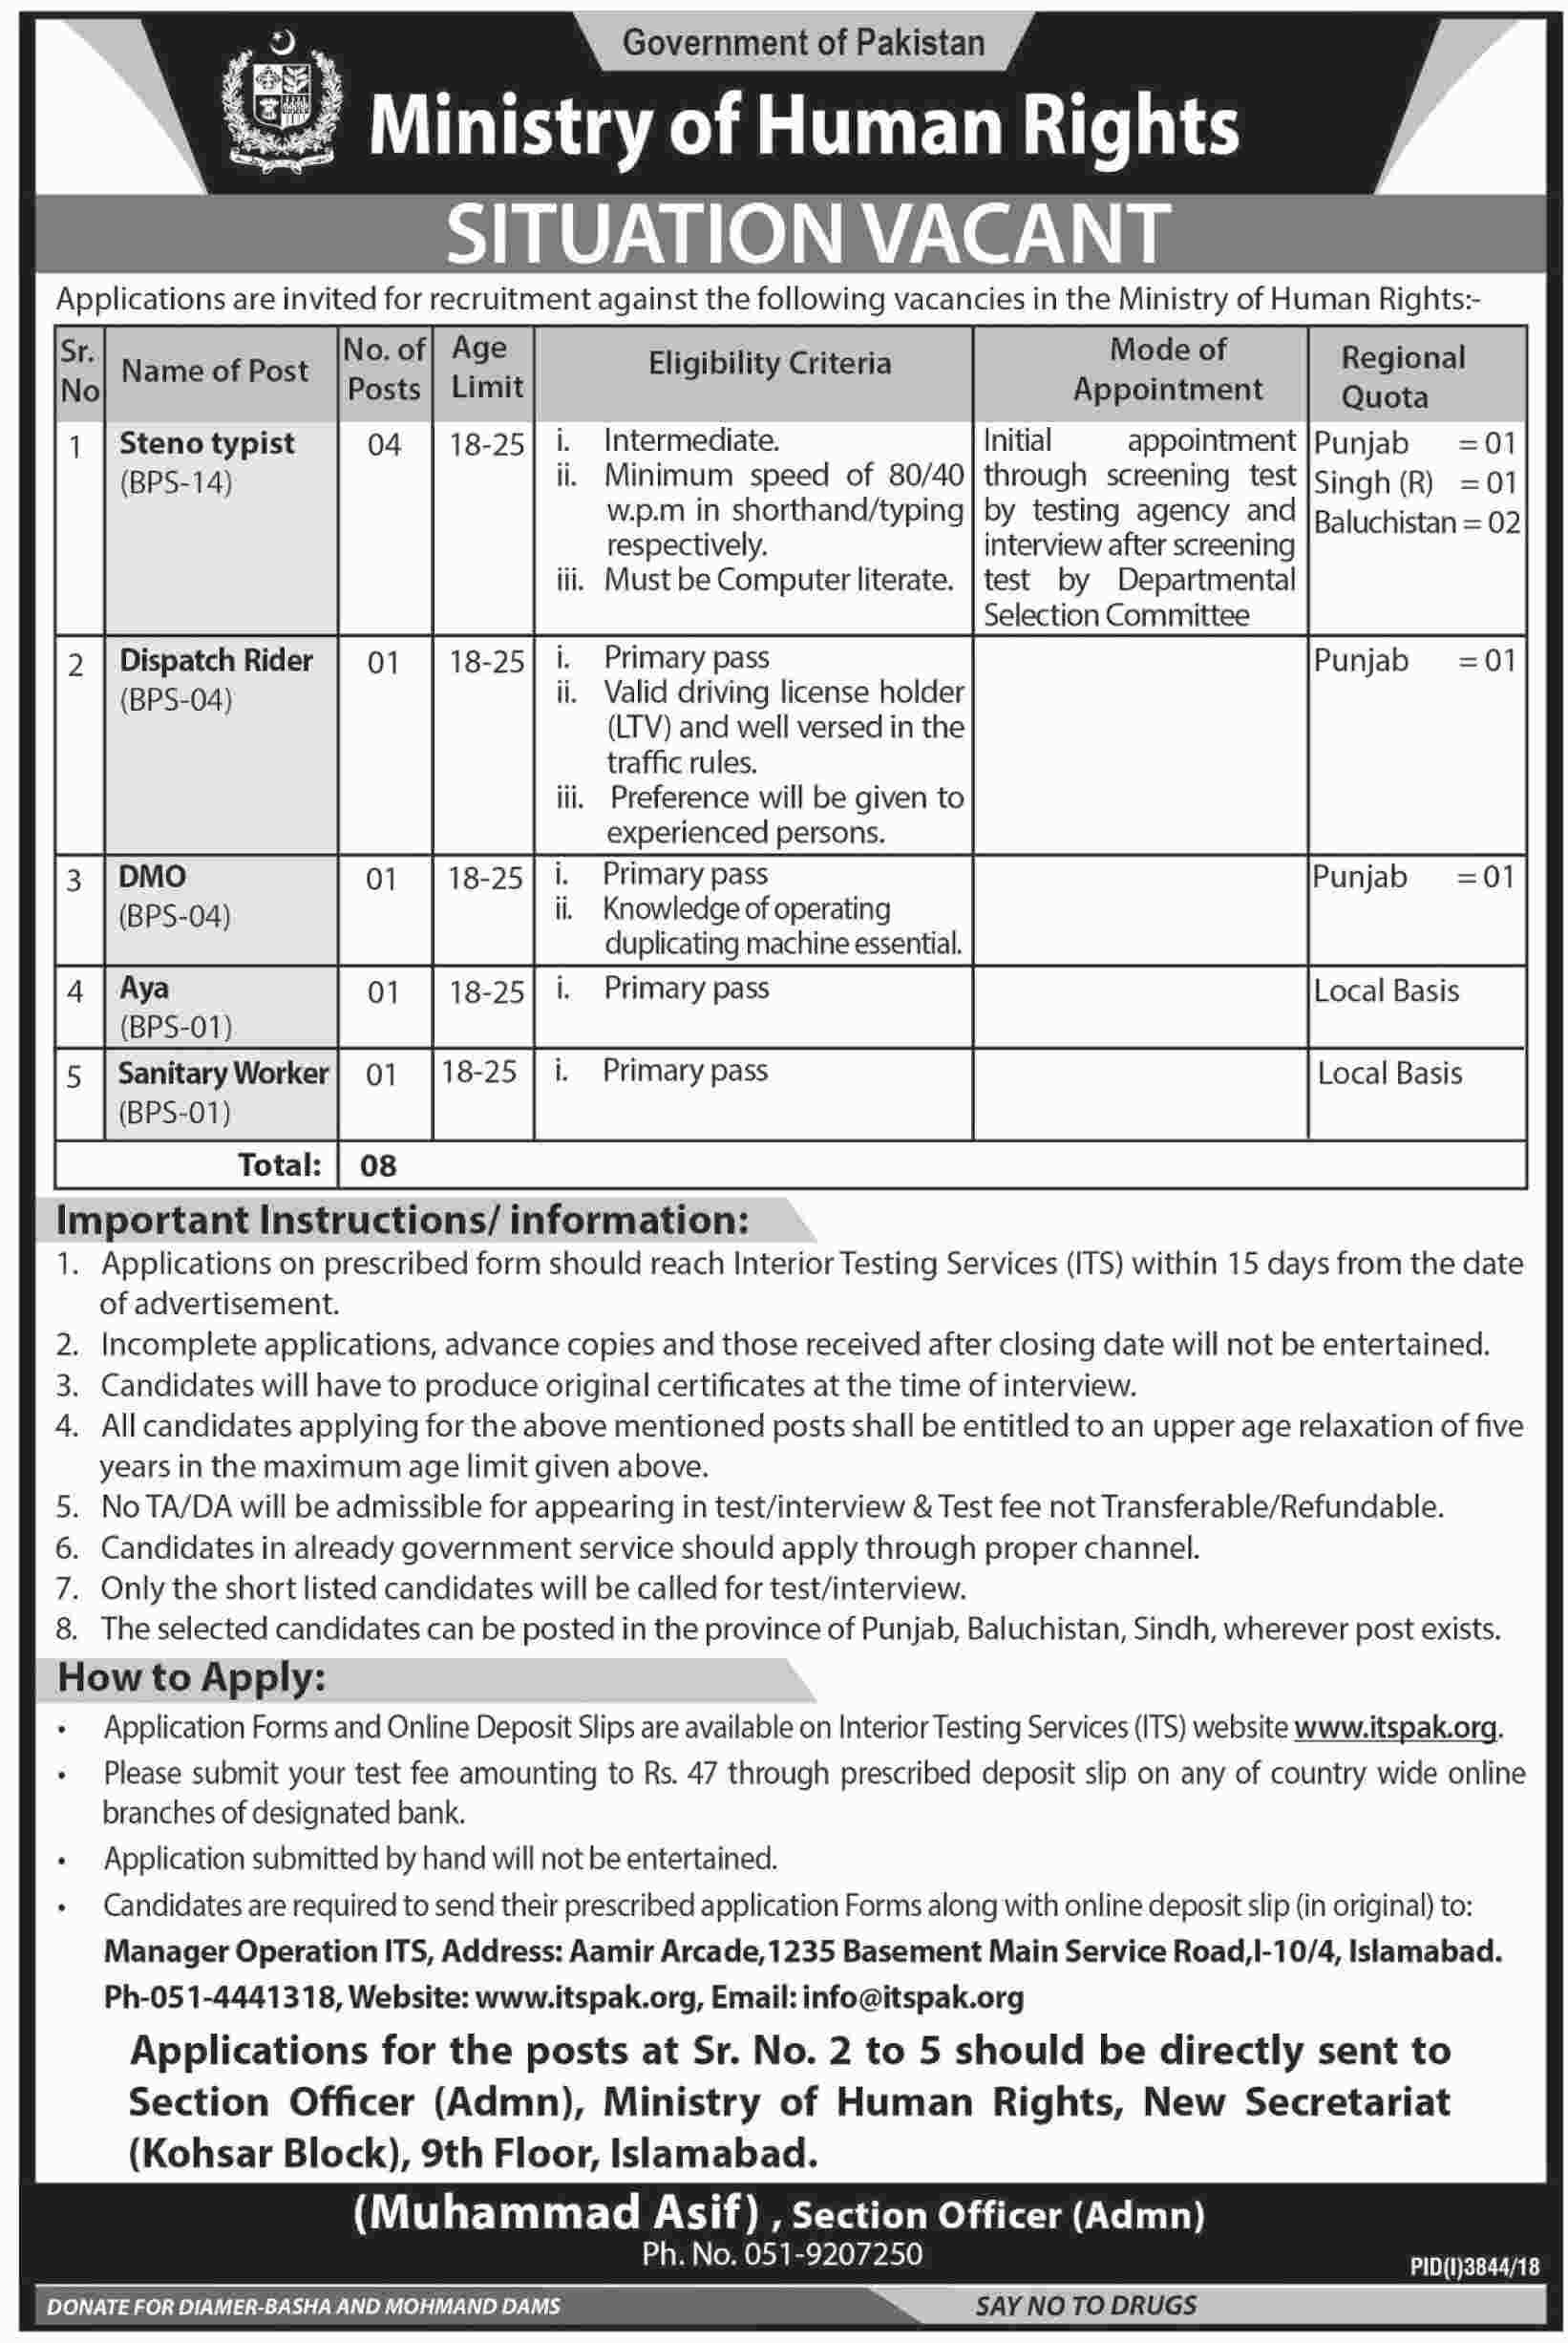 Ministry of Human Rights Interior Testing Services ITS Jobs